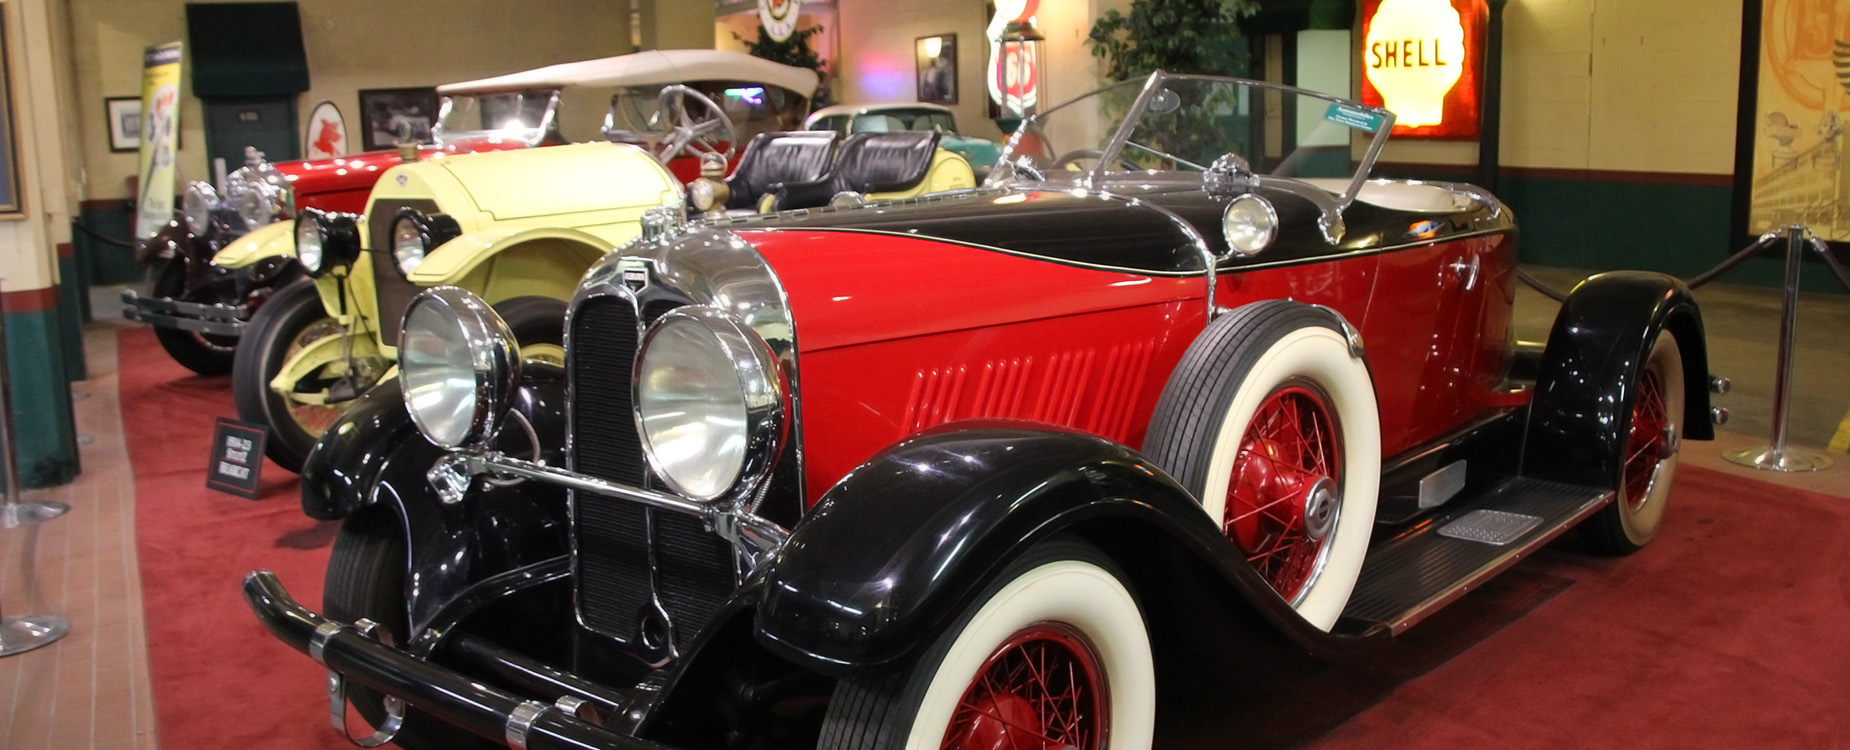 Turner Woodard - The Auto Collection of Turner Woodard